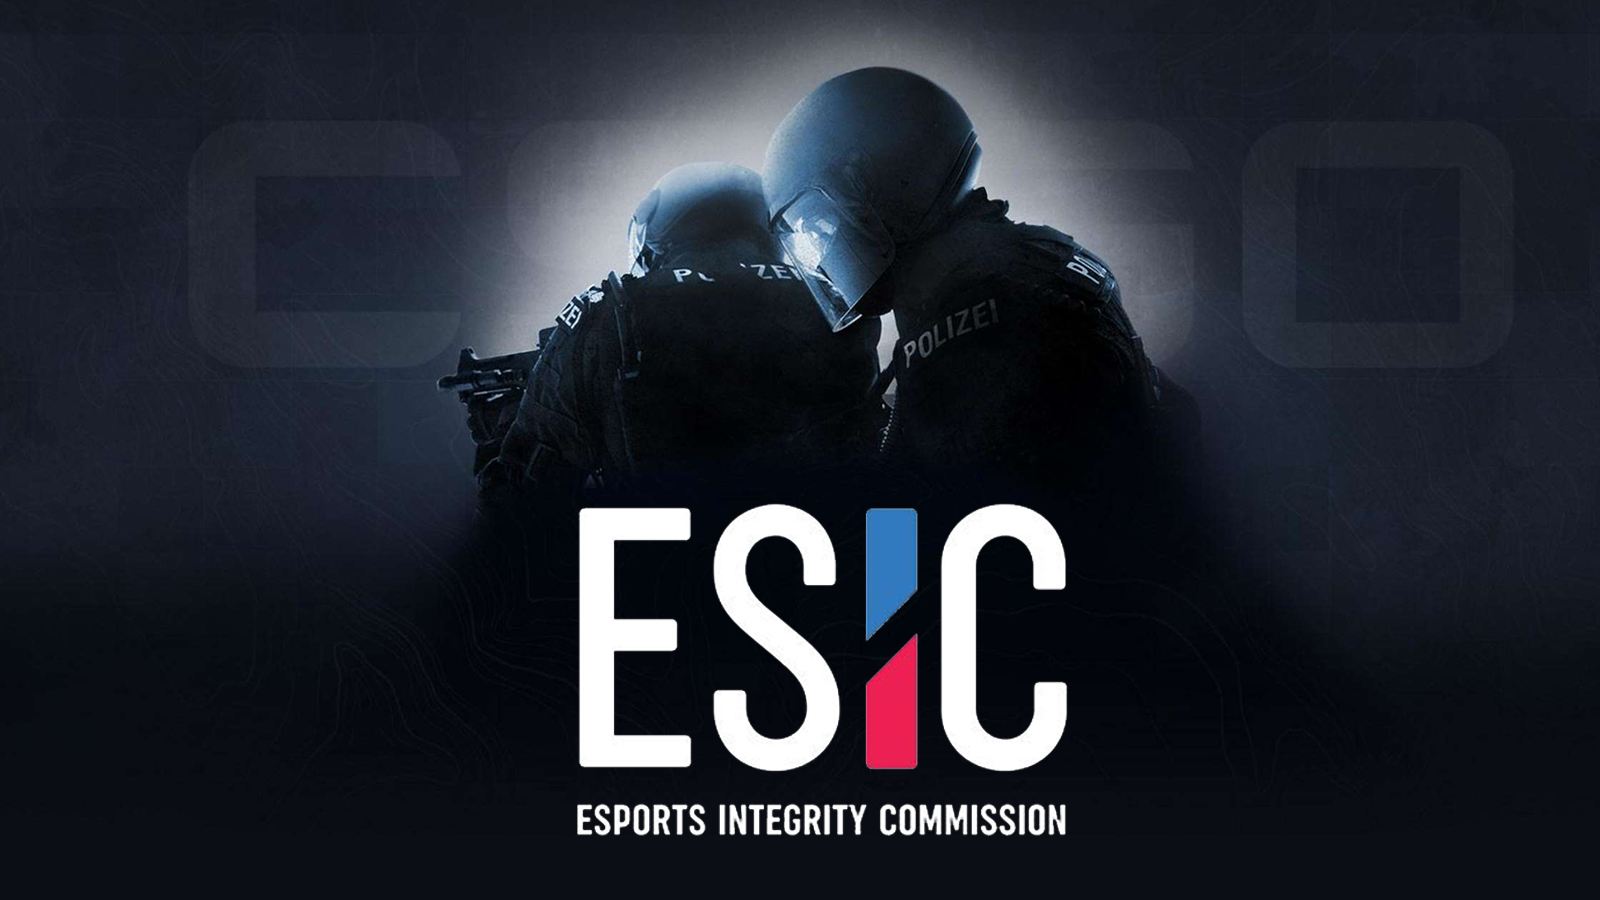 ESIC bans 35 more CSGO Counter-Strike players for betting offences.